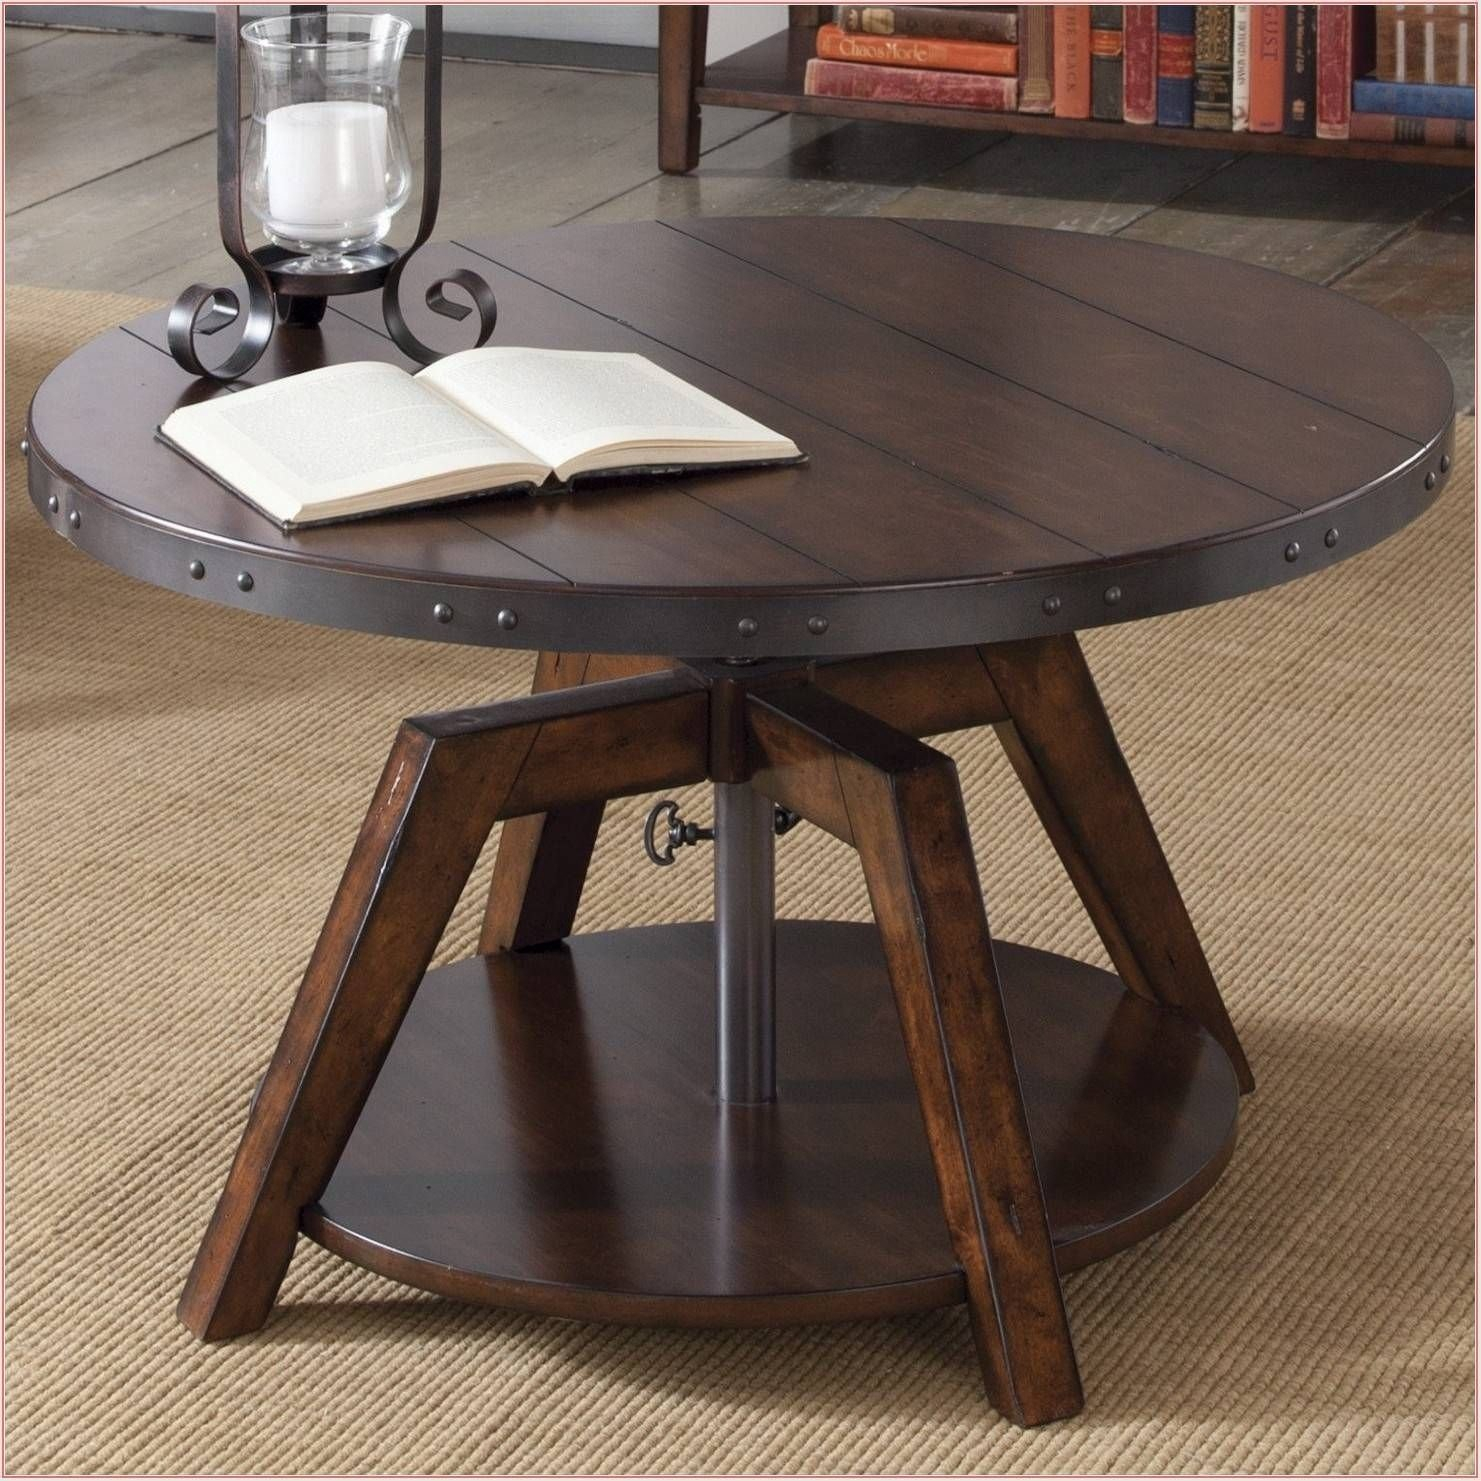 50 Amazing Convertible Coffee Table To Dining Table Up To 70 Off with regard to size 1481 X 1481